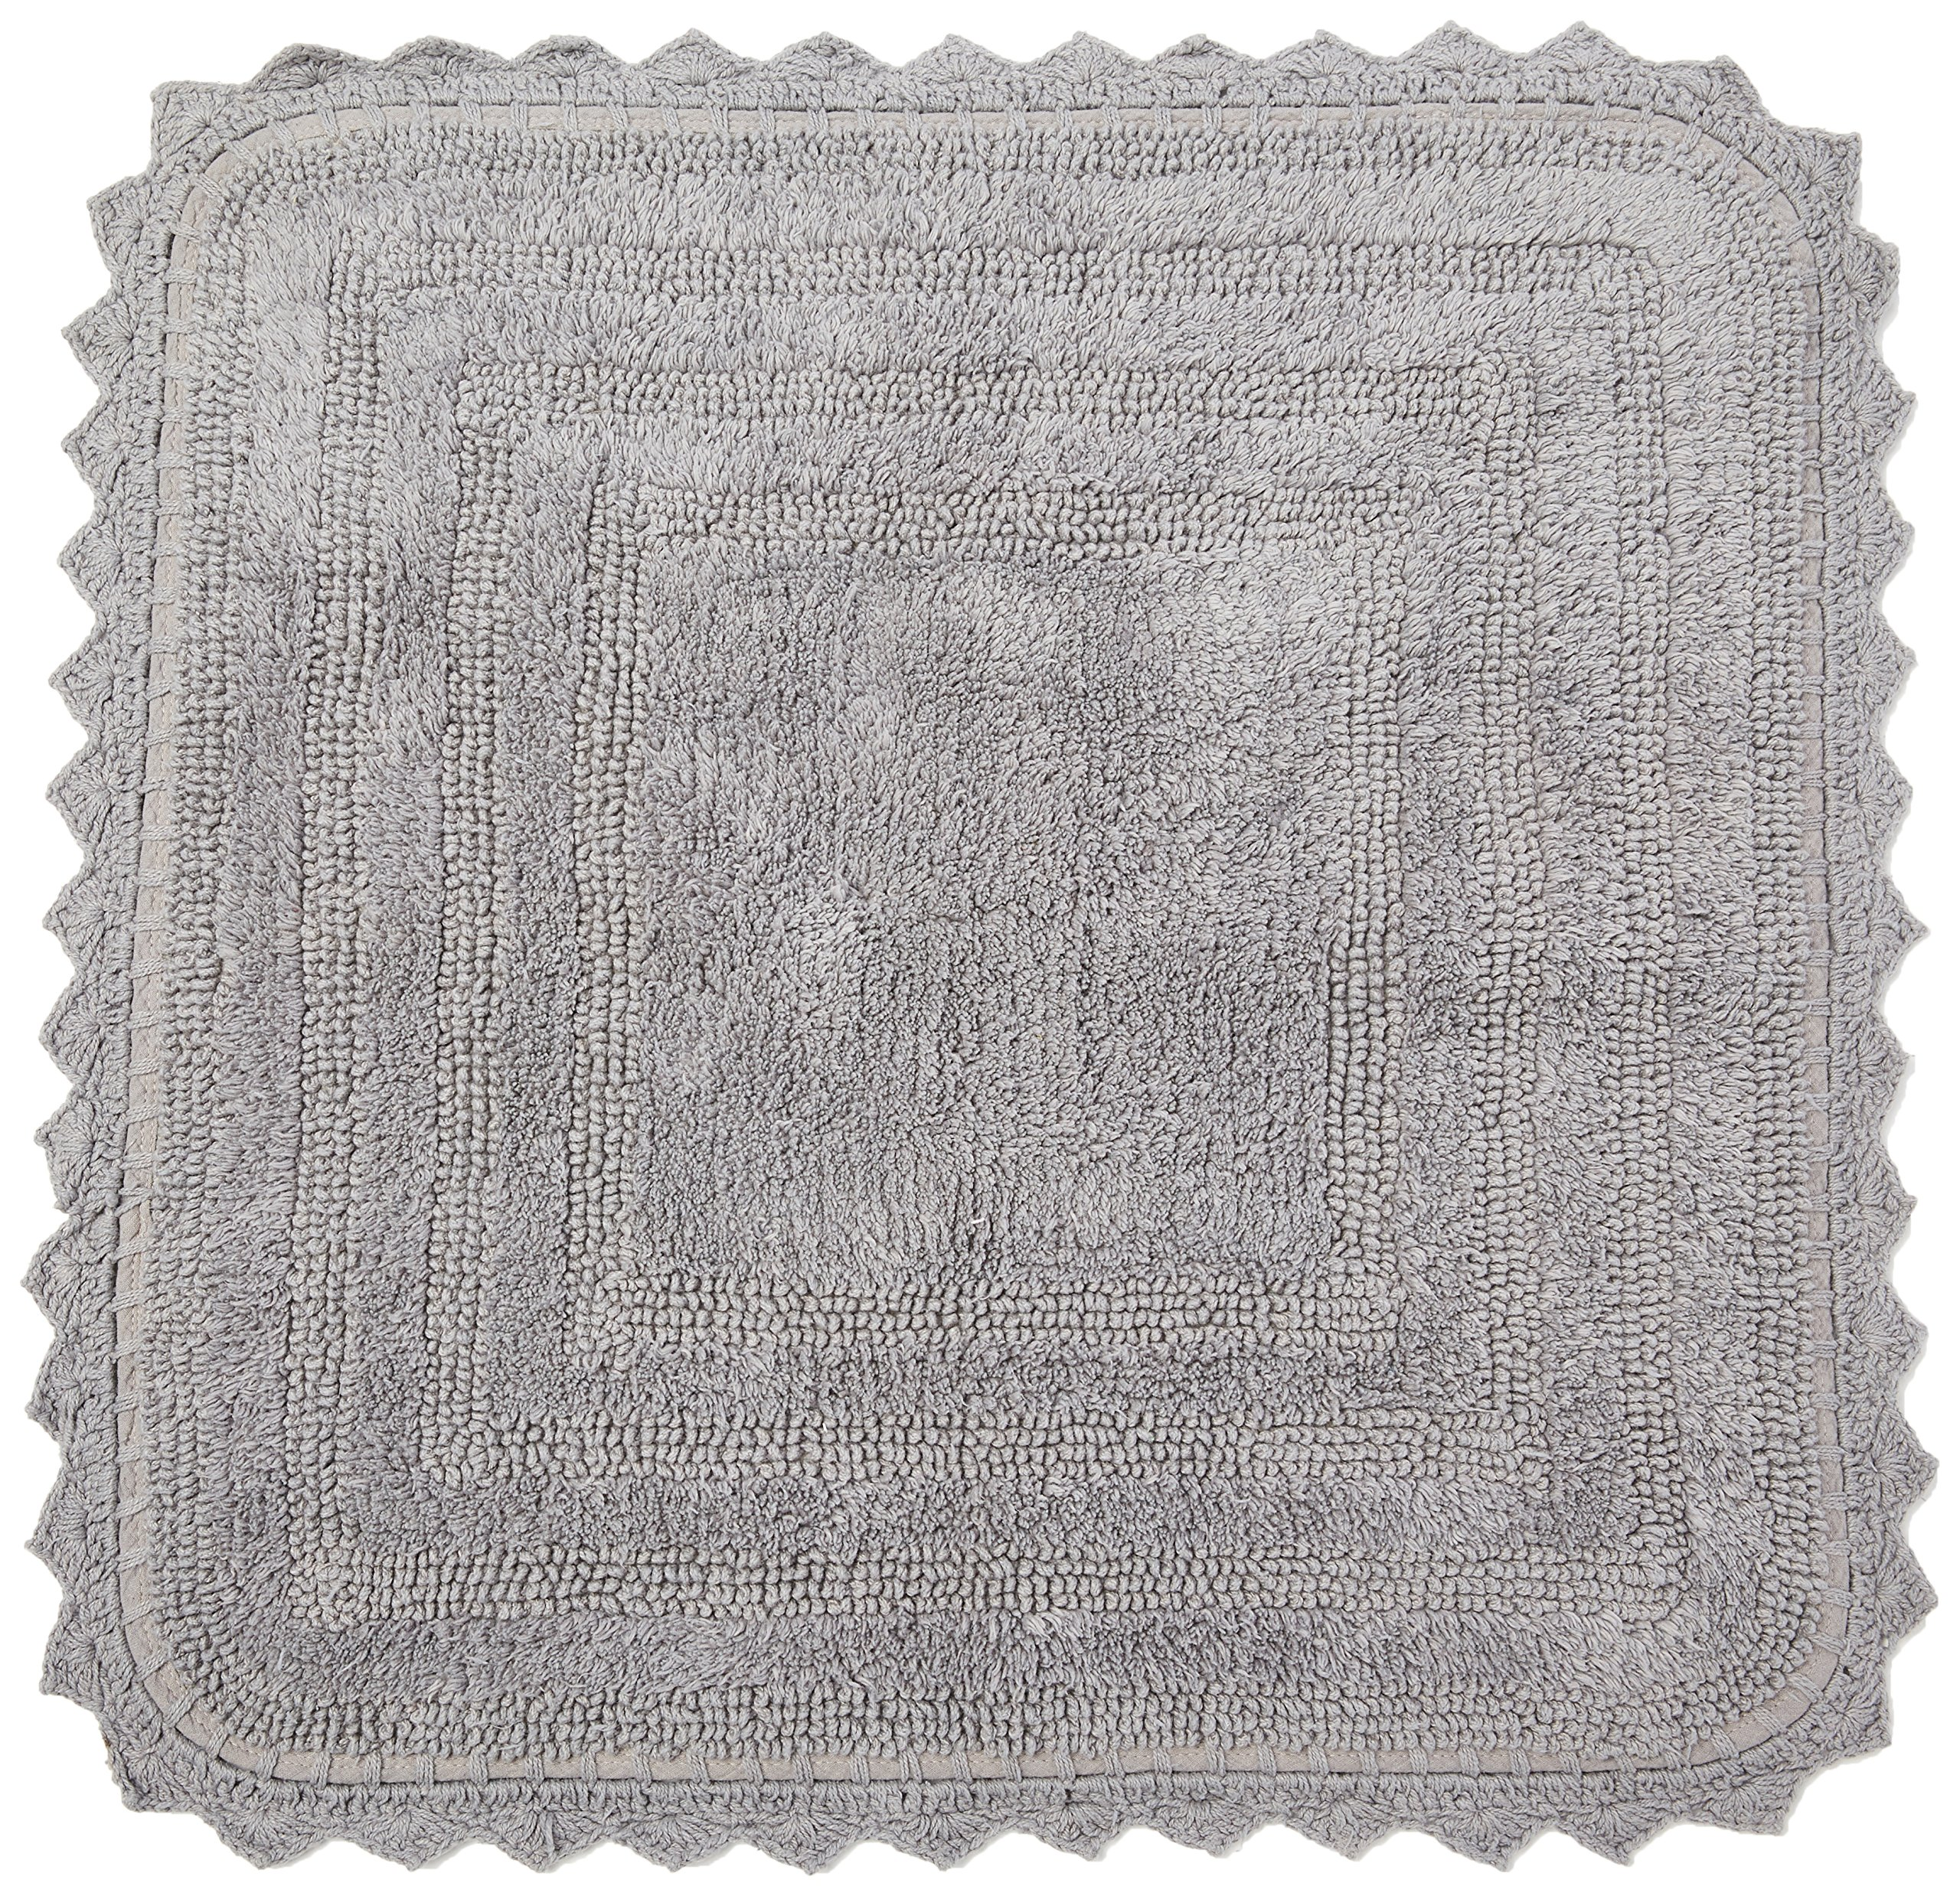 DII Ultra Soft Spa Cotton Crochet Square Bath Mat or Rug Place in Front of Shower, Vanity, Bath Tub, Sink, and Toilet, 24'' - Gray